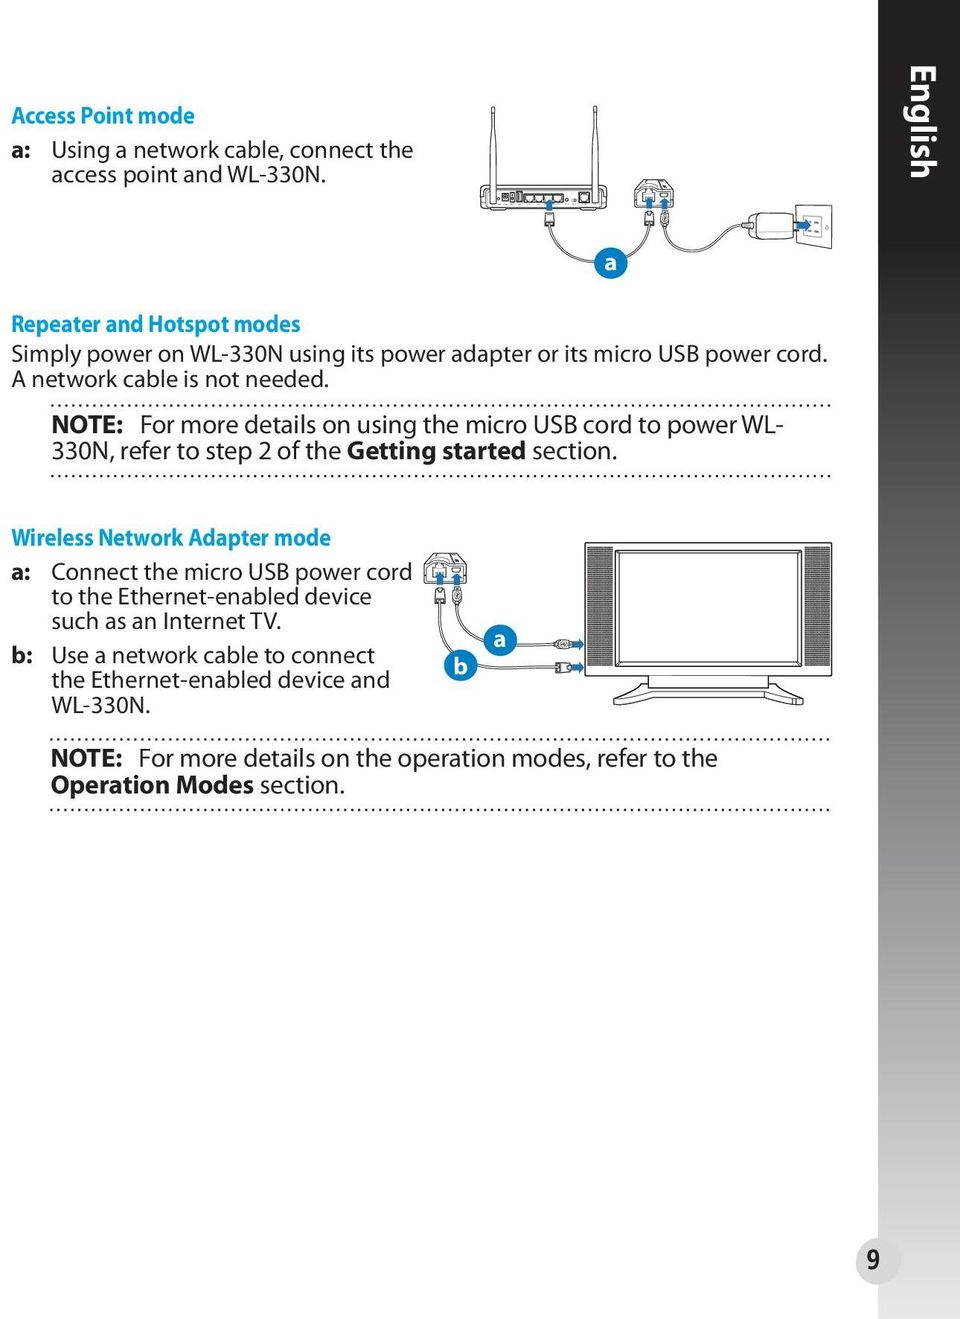 NOTE: For more details on using the micro USB cord to power WL- 330N, refer to step 2 of the Getting started section.